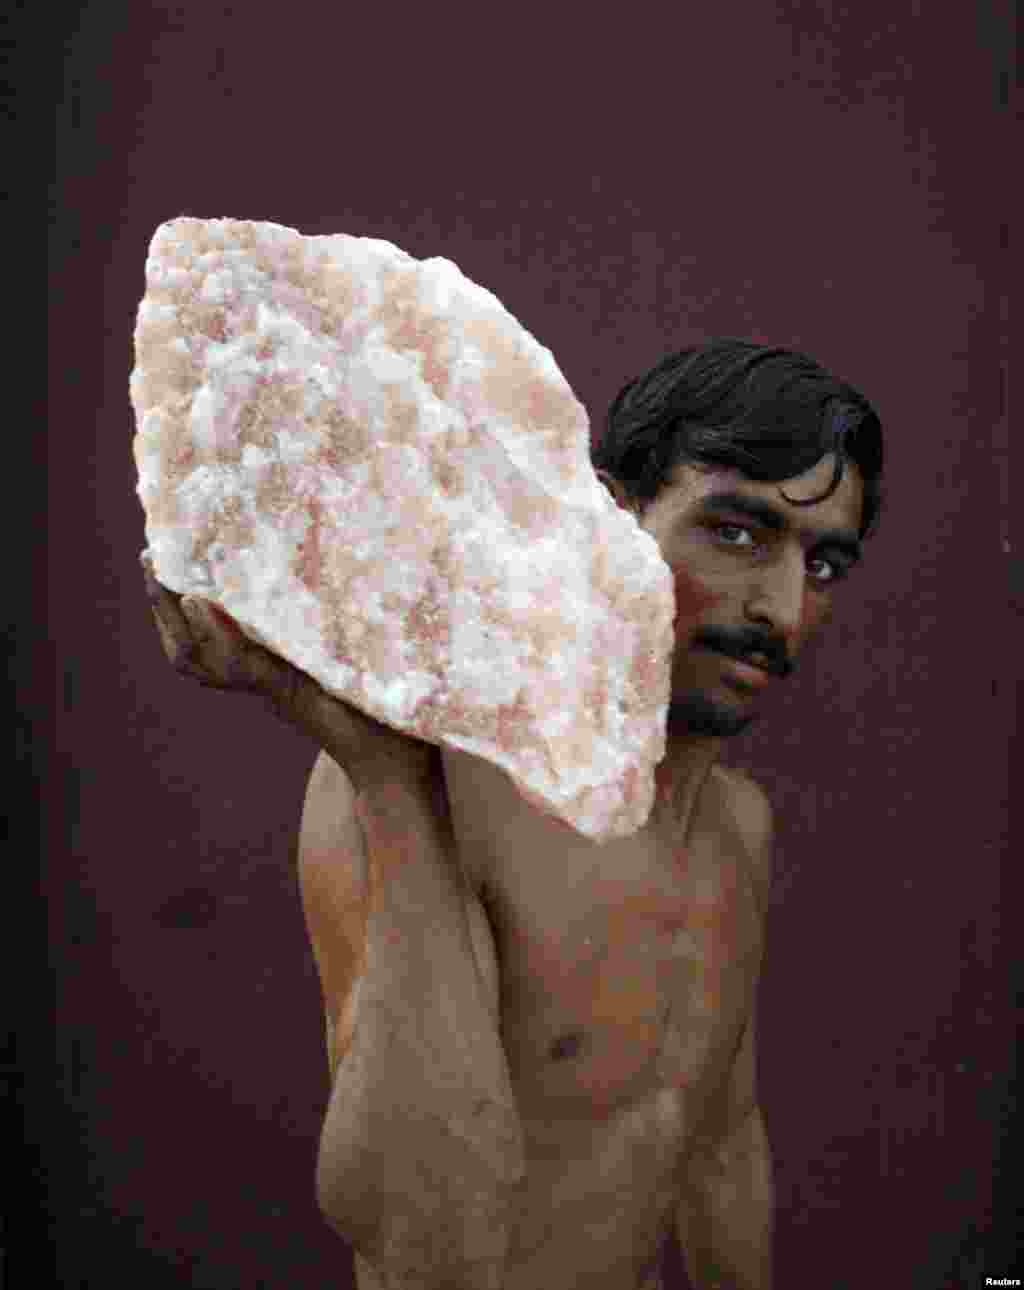 A laborer, carrying rock salt for loading onto a railway carriage, stops to pose for a photo on a train-station platform in Khewra.